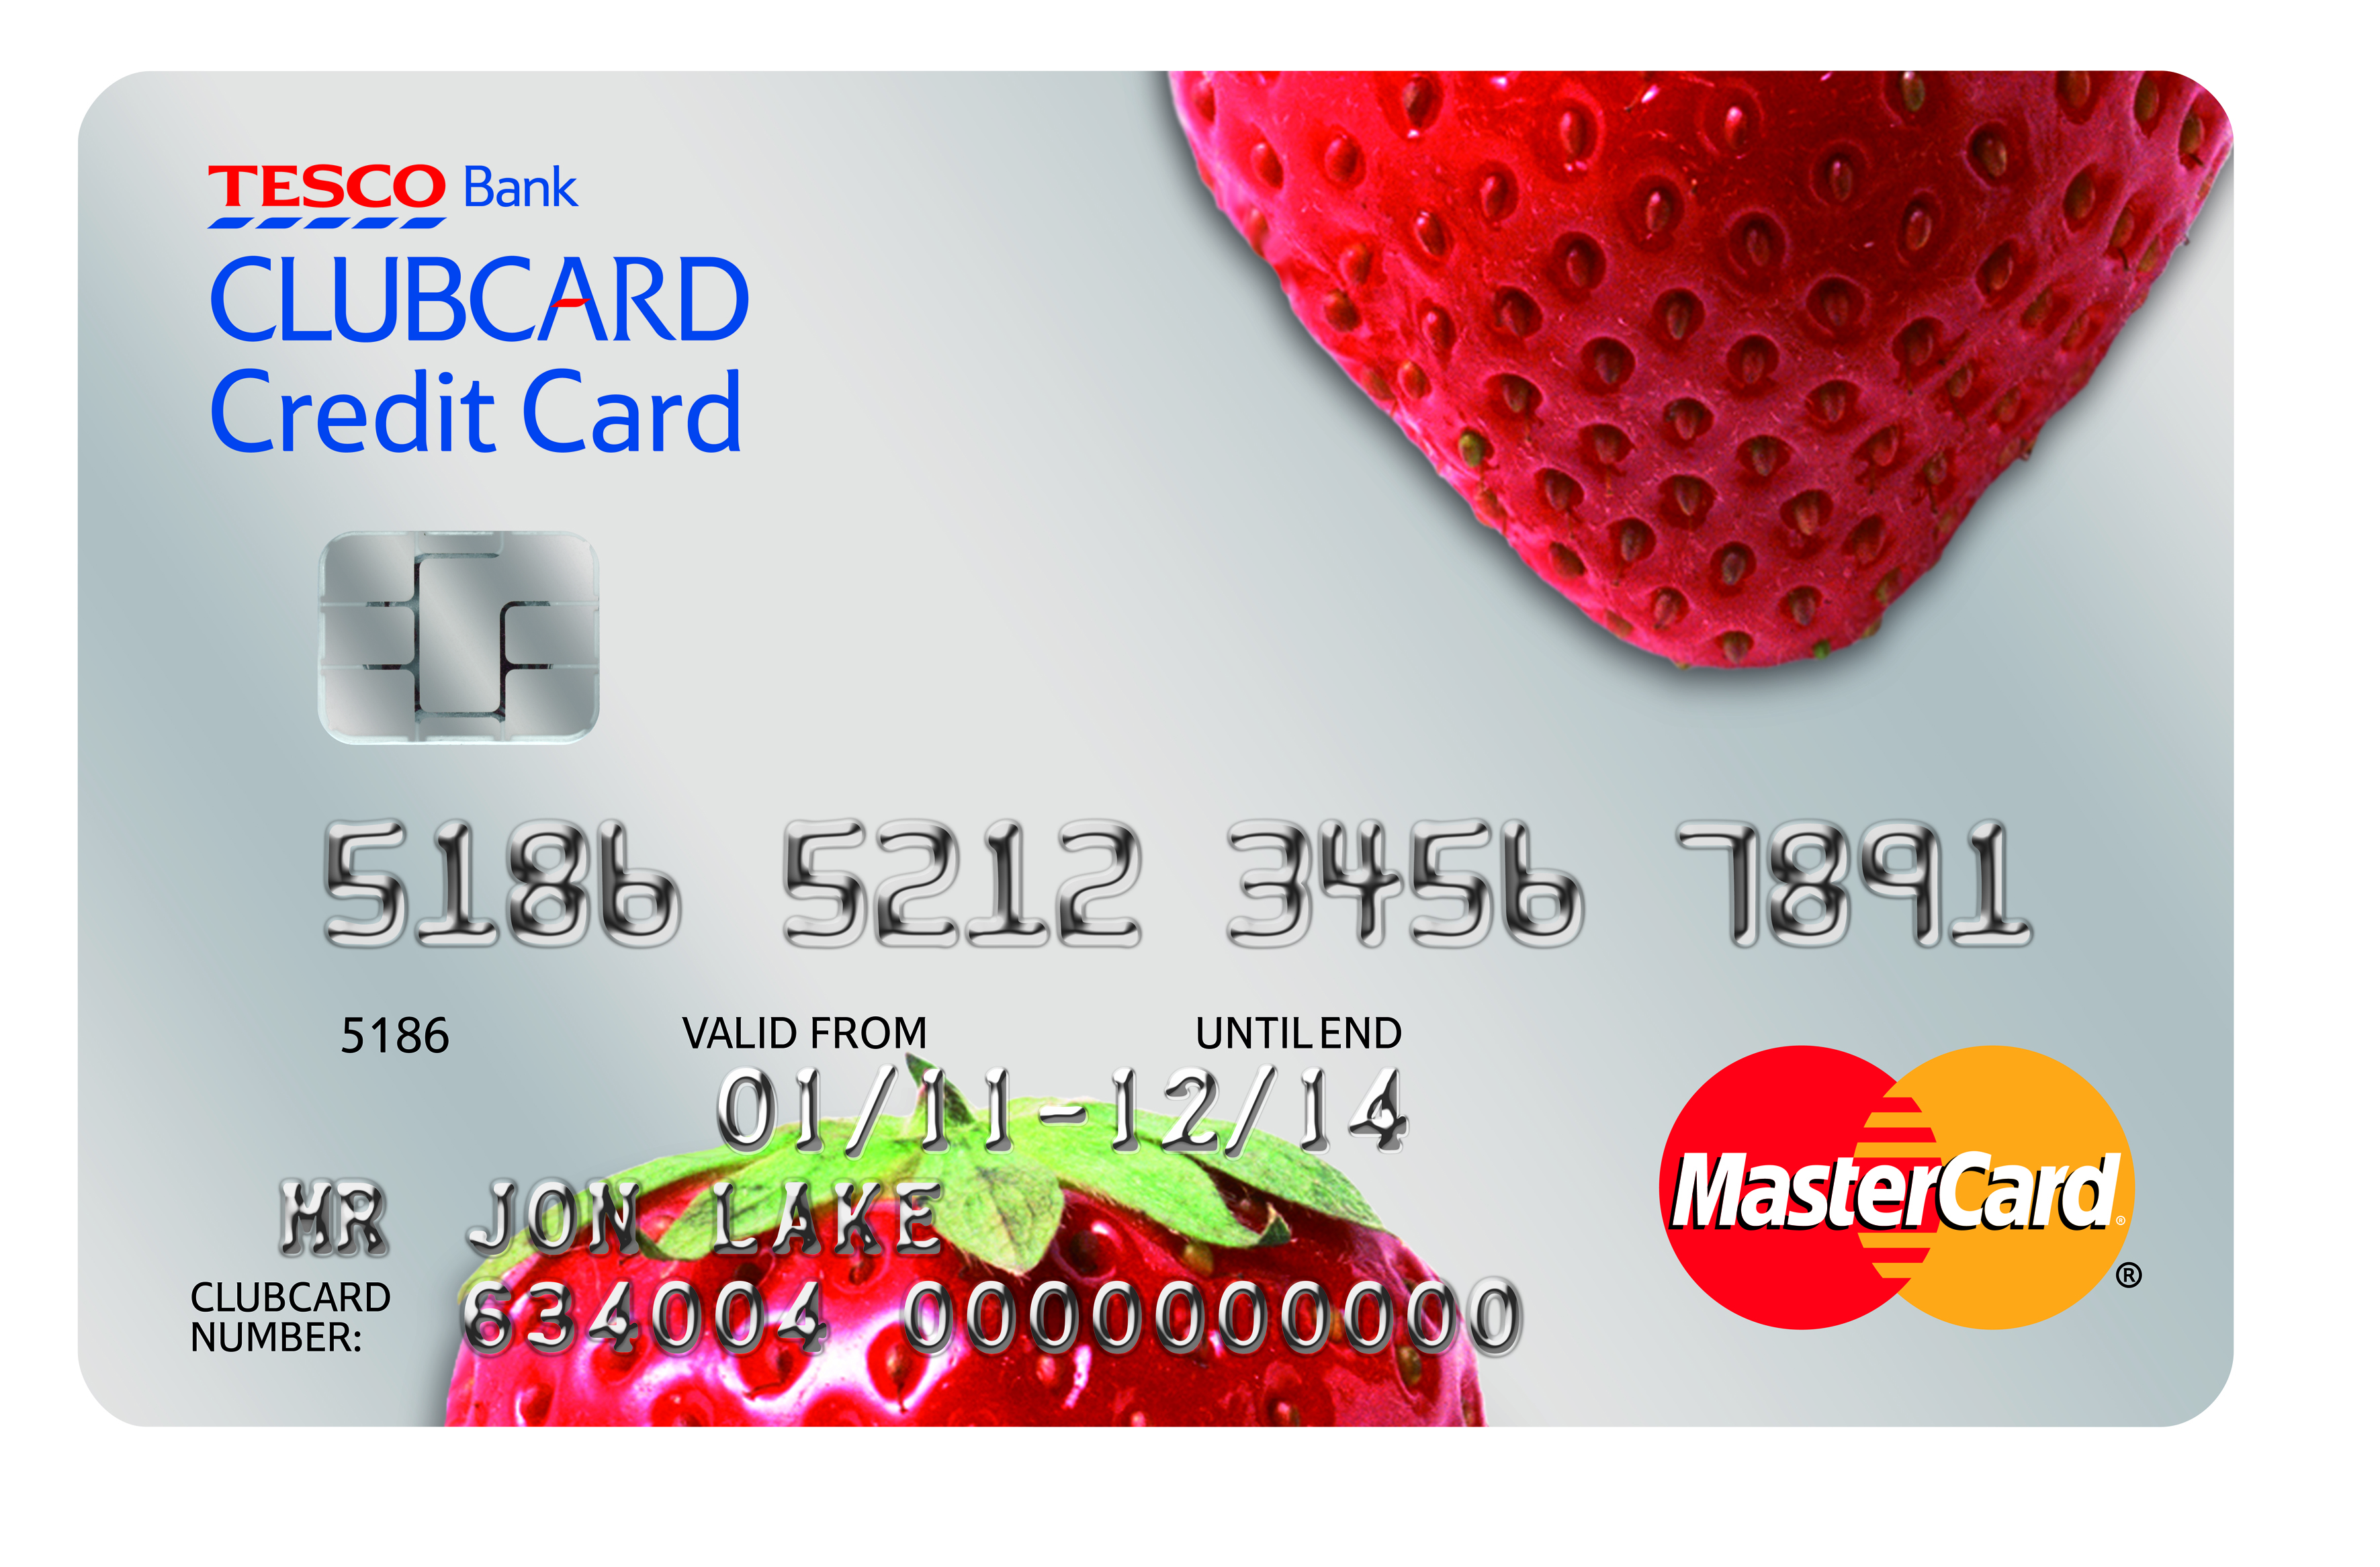 Best Credit Card For Earning Points For Travel